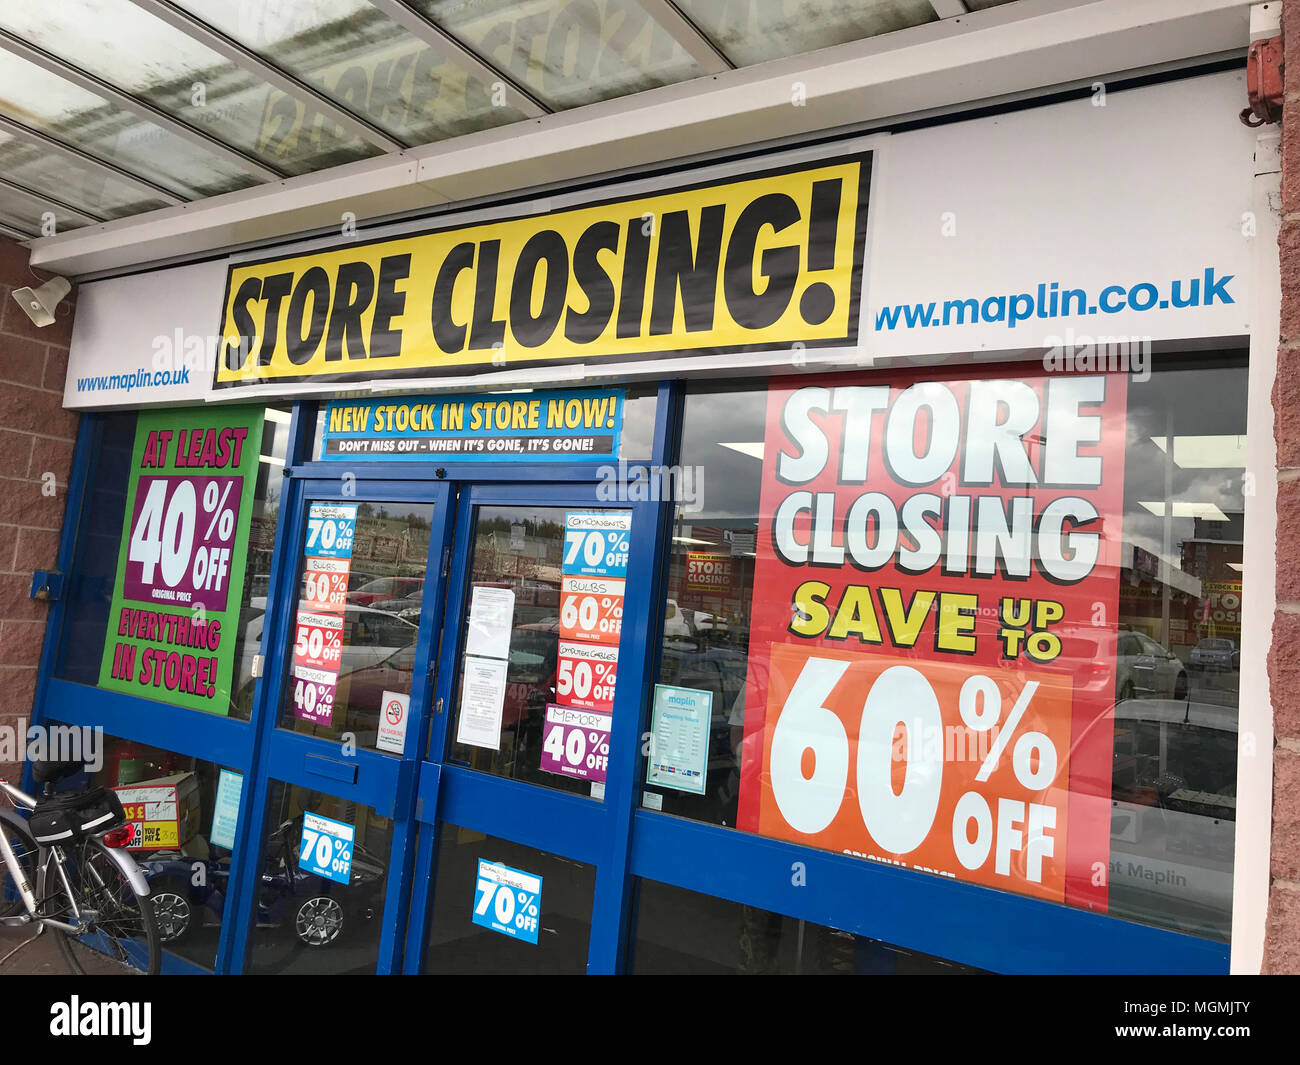 GoTonySmith,Maplin,electronics,maplins,store,shop,closing,Cheshire,UK,receiver,winding up,savings,bargains,high,street,High St,doomed,Maplin.co.uk,Another,closed,in danger,Empty,empty store,Retail,problems,problem,lost,logo,Maplin Sign,signage,Electronics,gadgets,electrical,ICT,Computer,accessories,accessory,final,finished,shabby